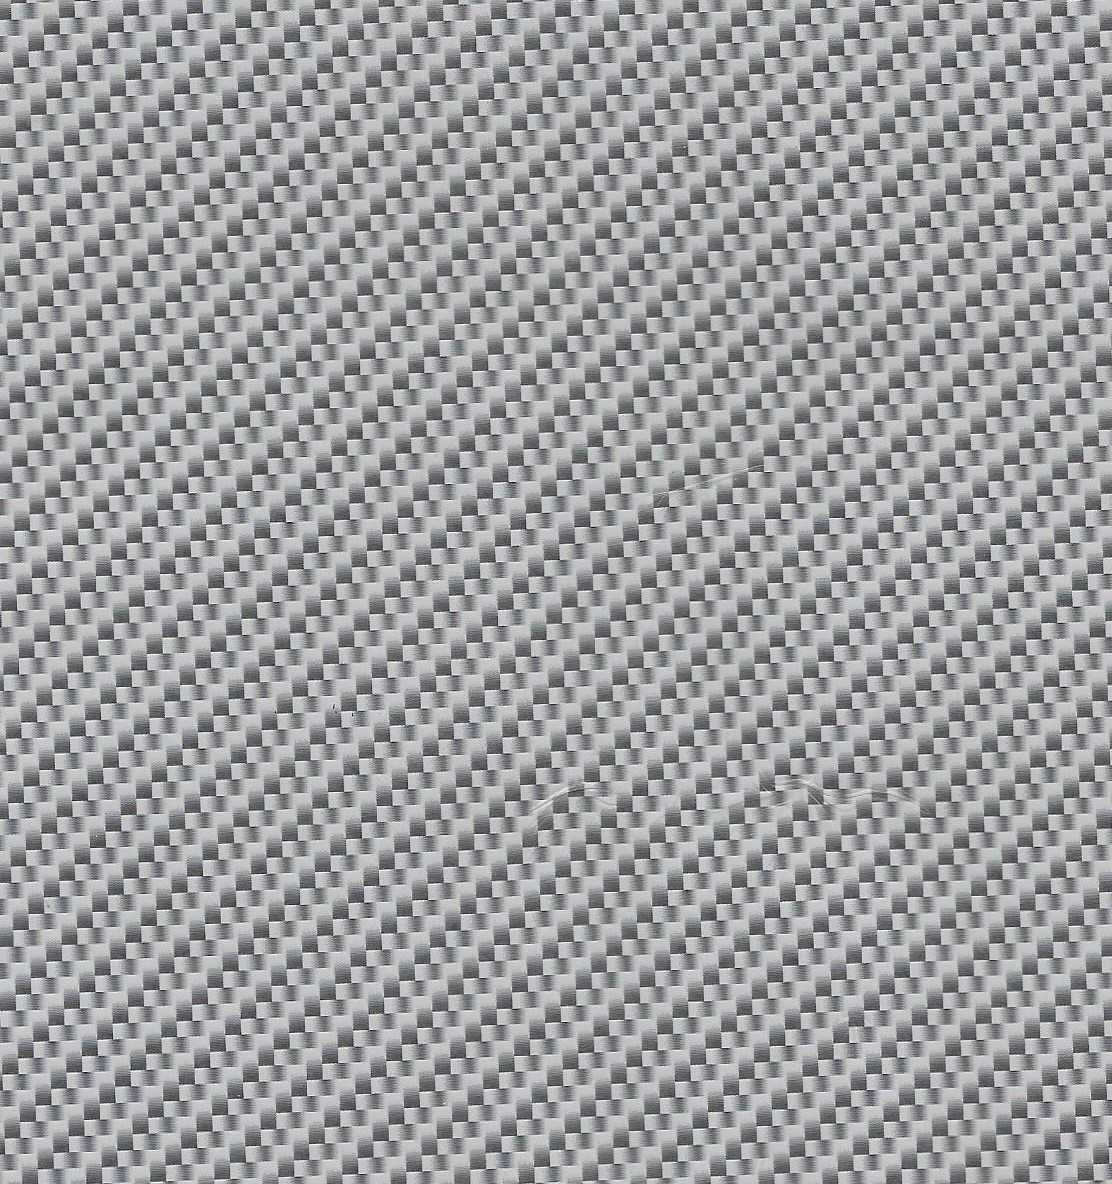 Specialized Wallpaper Hd White And Clear Carbon Fiber Emerald Coatings